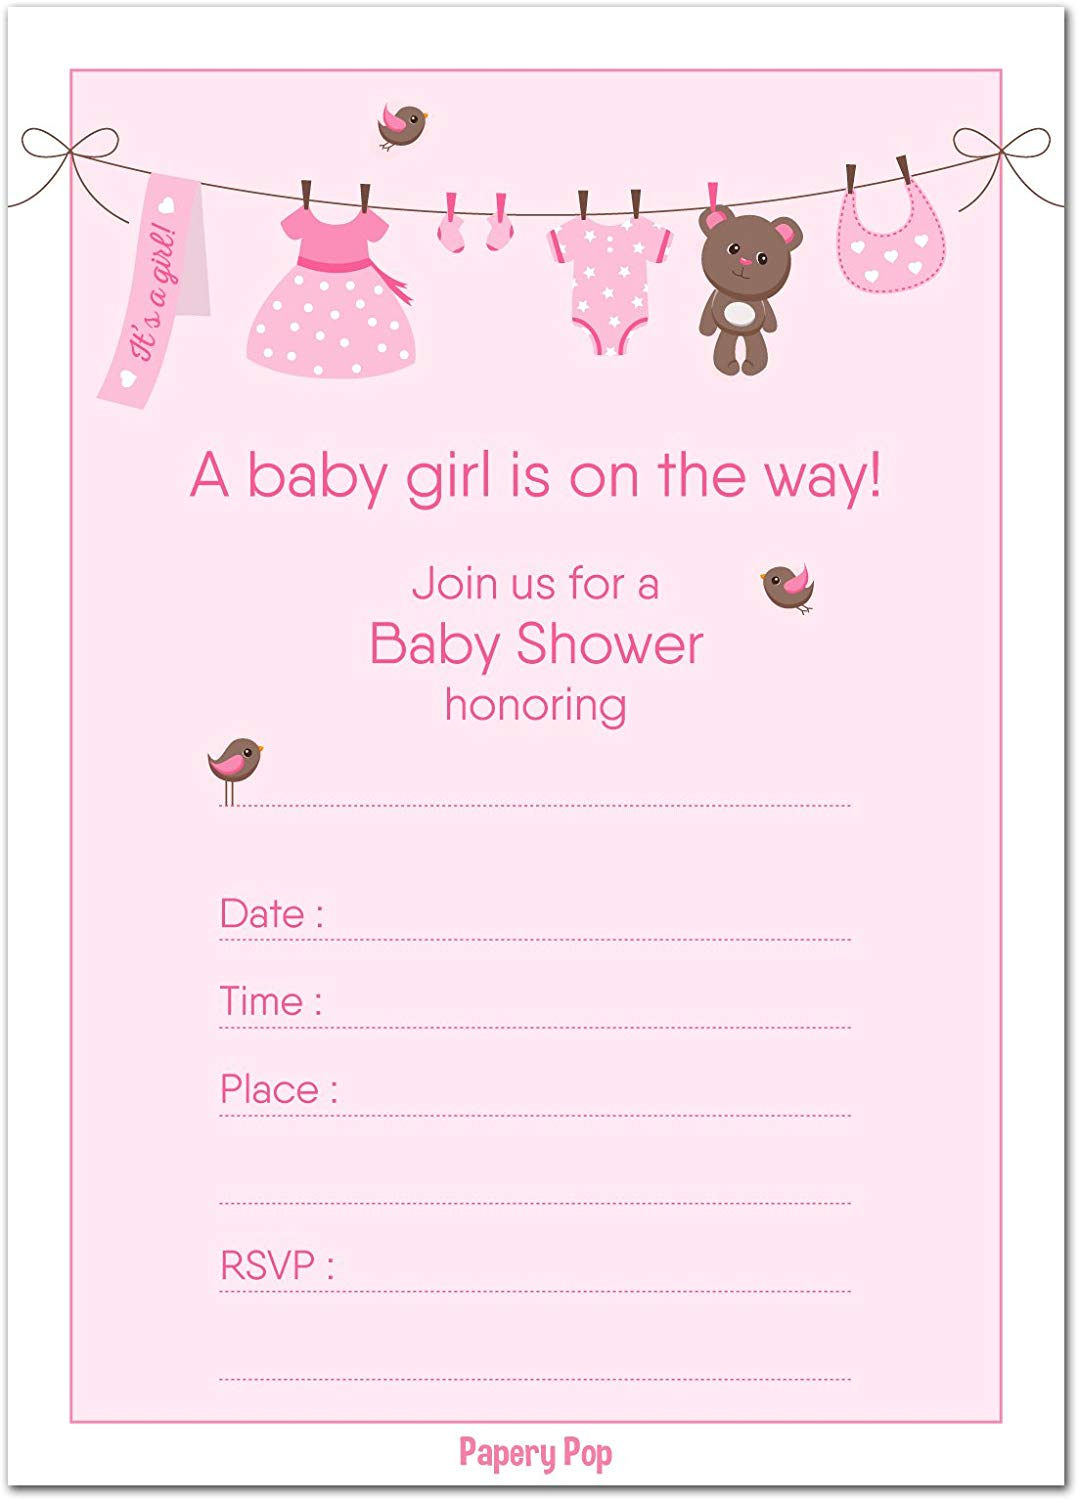 Full Size of Baby Shower:63+ Delightful Cheap Baby Shower Invitations Image Inspirations Baby Shower In With Arreglos Para Baby Shower Plus Baby Shower Wording Together With Princess Baby Shower